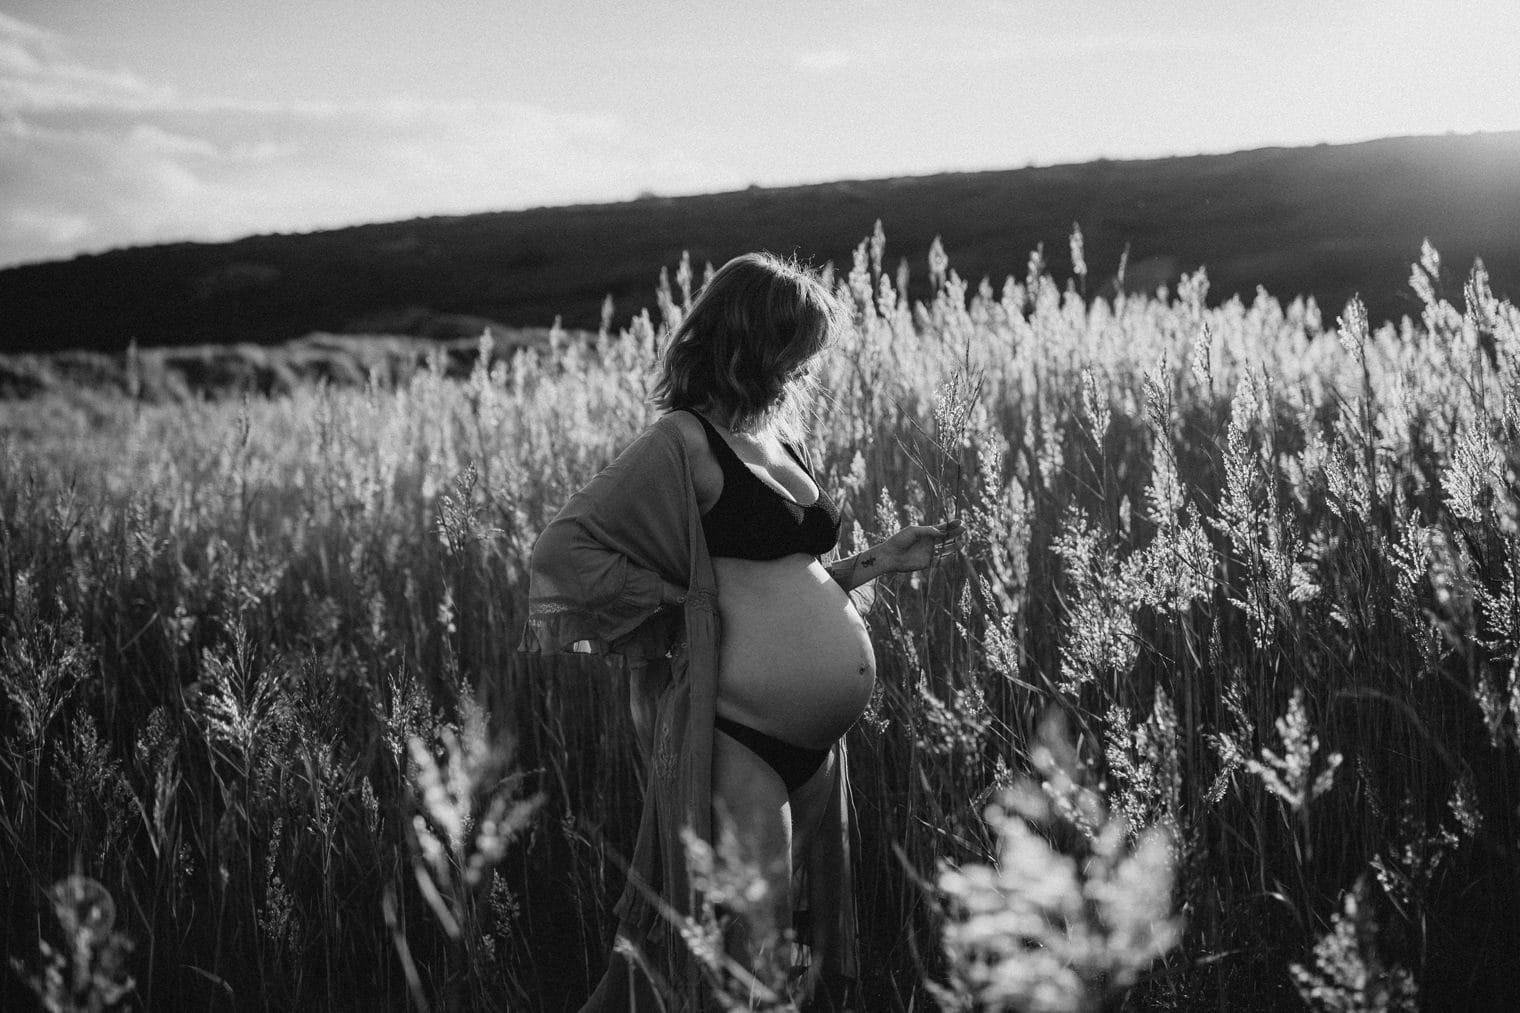 Mother to be amongst a field of reeds in Cornwall